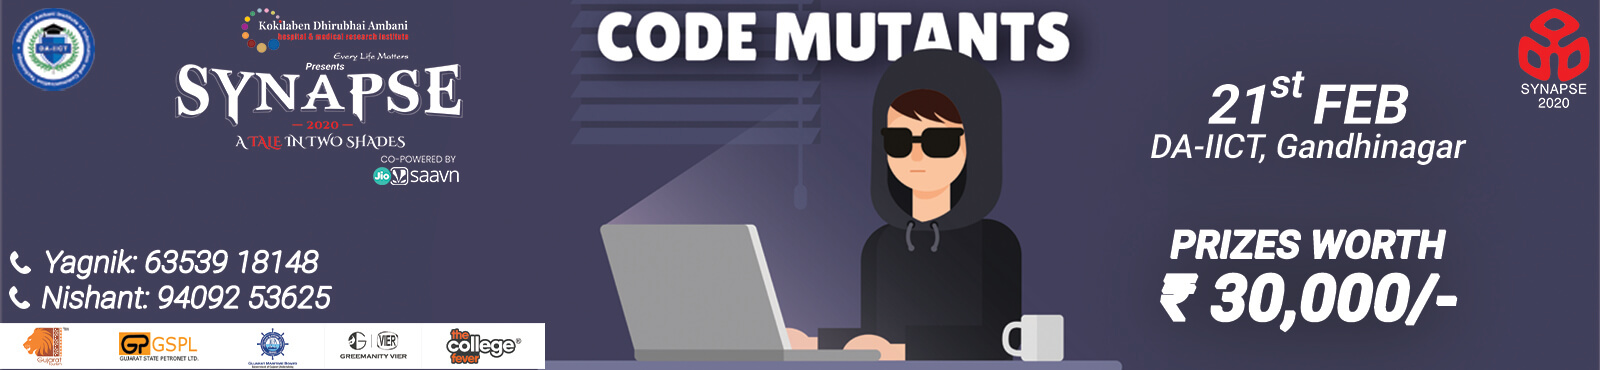 Code Mutant, SYNAPSE